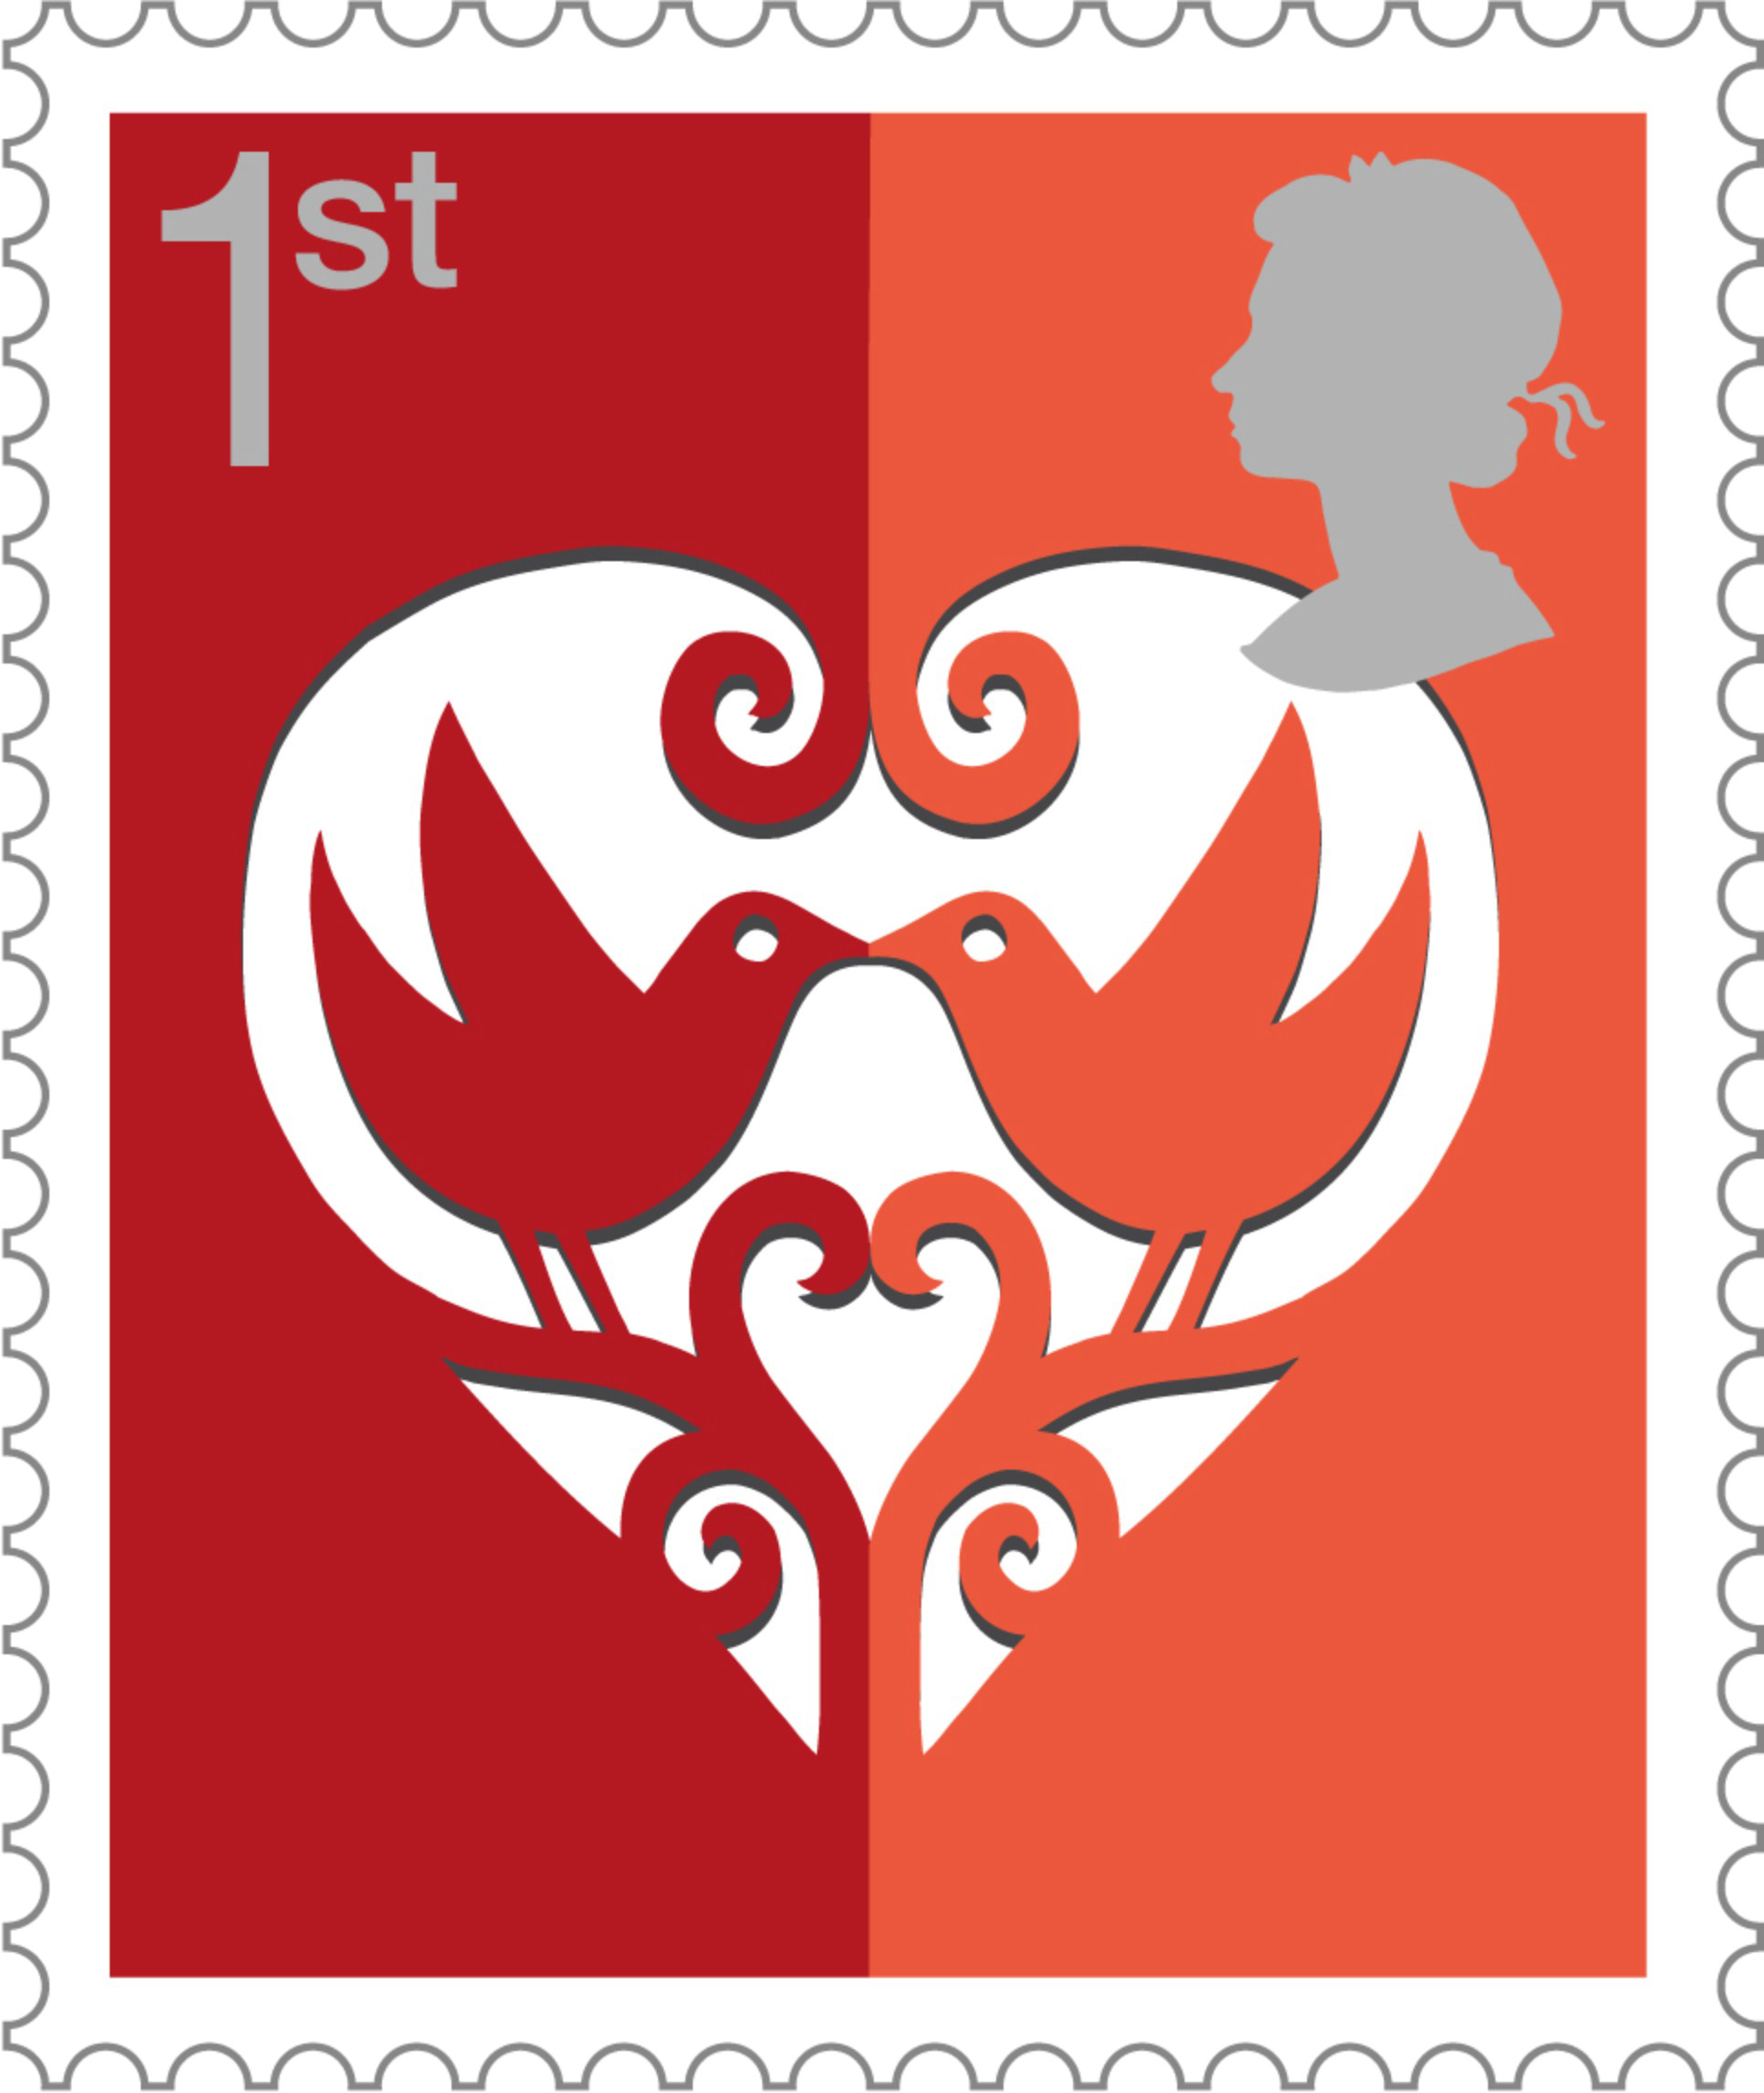 Smiler Stamp Depicting Love Value First Class